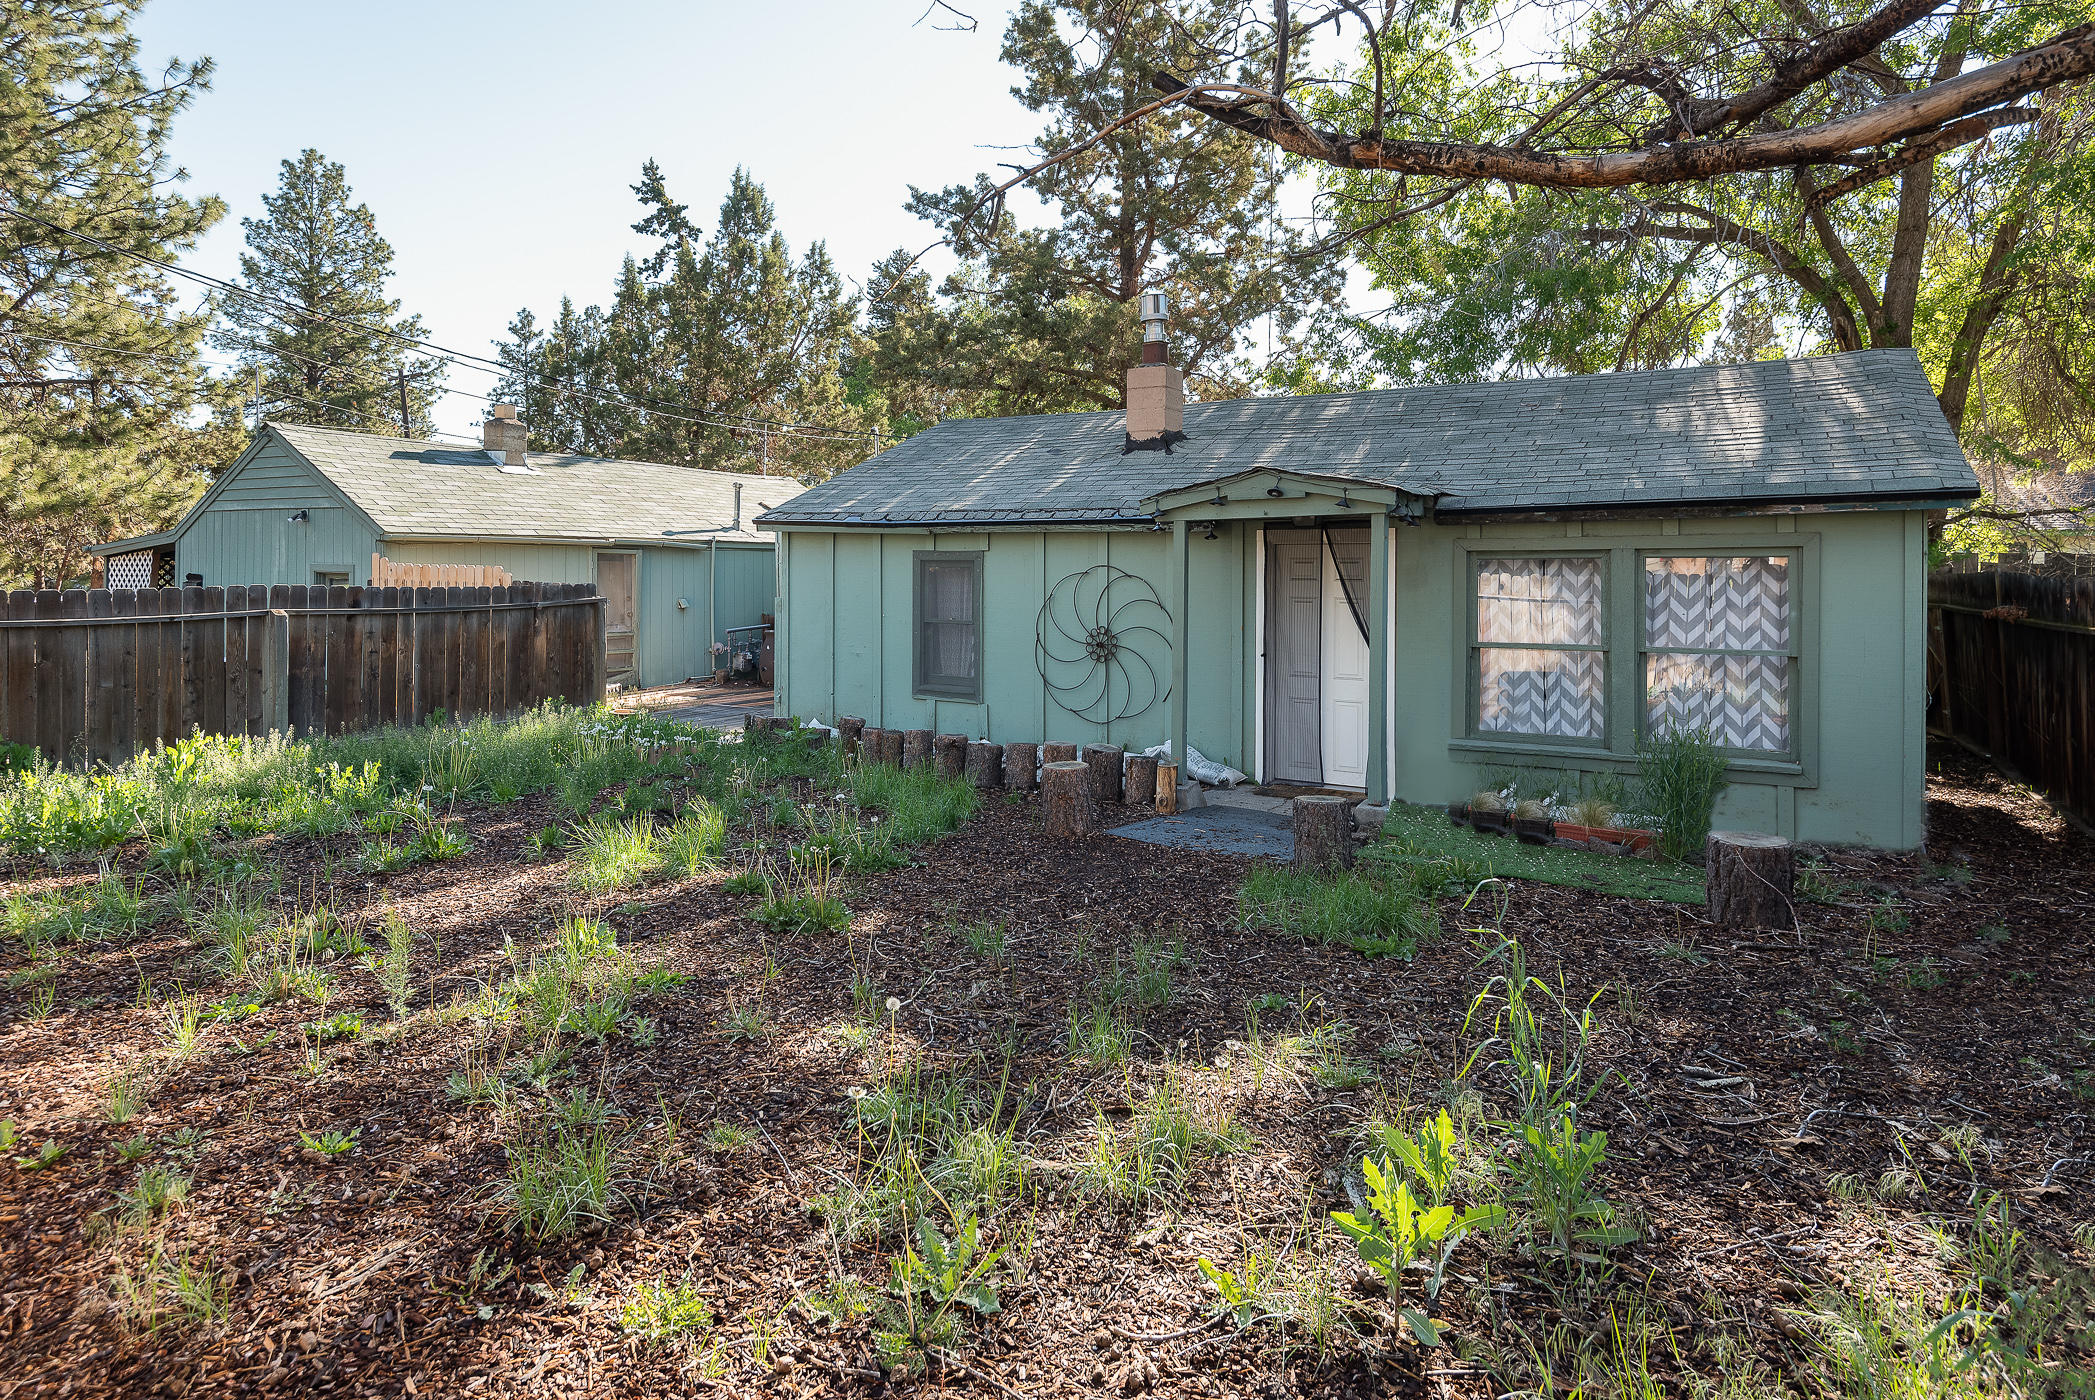 Great investment opportunity in SE Bend. Two separate structures, on two separatetax lots, that can be sold together or separately. Located in the Opportunity Zoneand zoned RM, these two properties have tons of potential. One unit features 480sq ft with 1 bedroom, 1 bathroom, and a storage shed, while the other features 600sq ft, 1 bedroom, 1 bathroom, and a storage shed. Properties are being sold as is.Buyer to do all due diligence regarding future development.